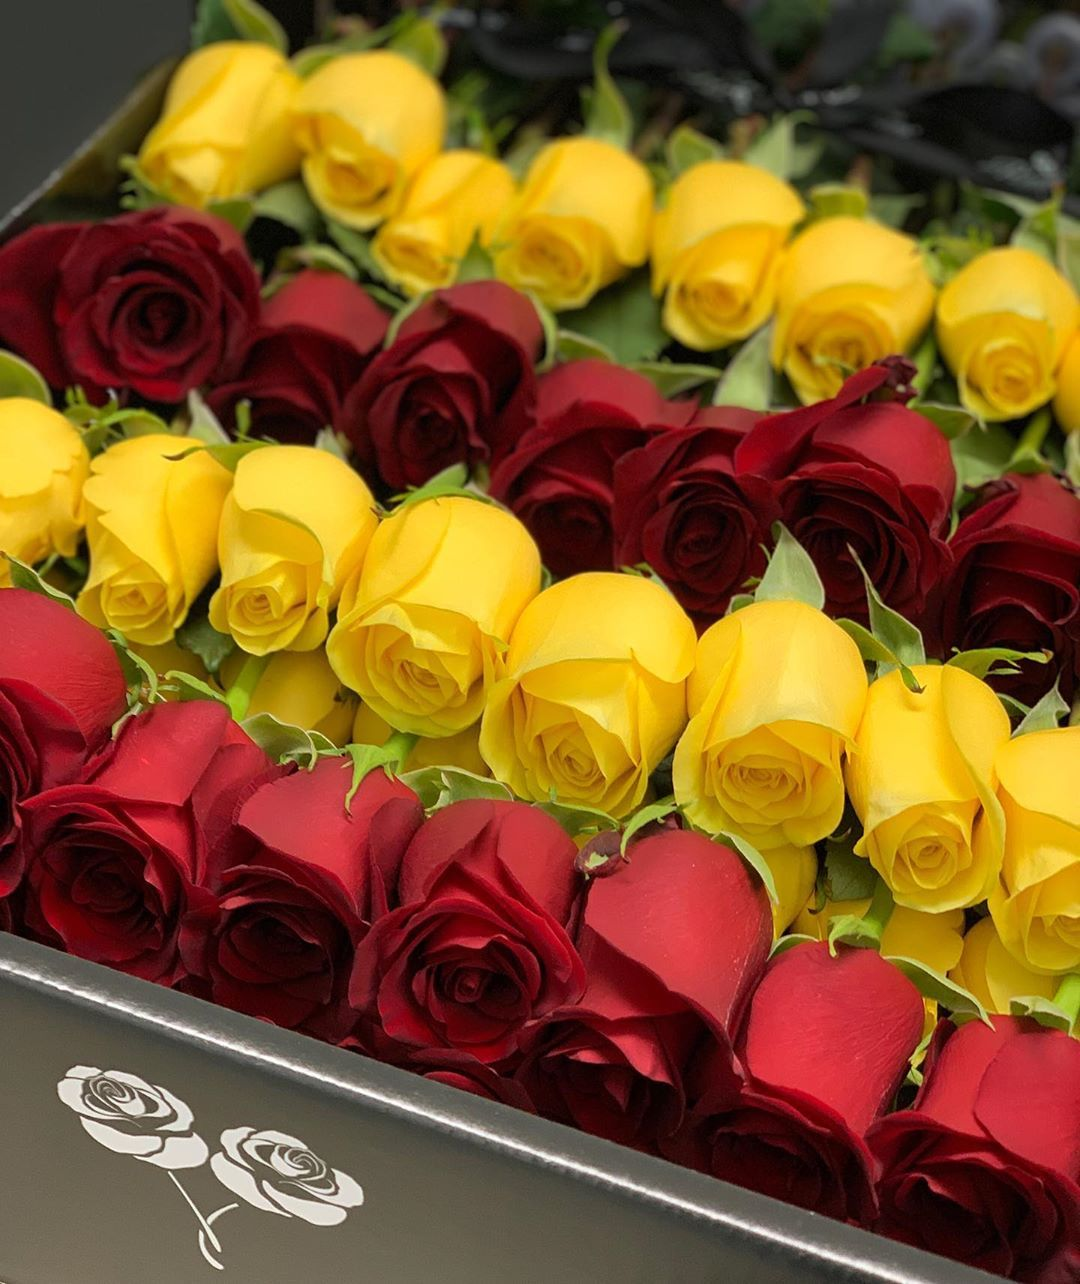 Bloom Luxury On Instagram Four Dozen Ways To Say I Love You Bloomluxury Redroses Yellowroses Originale Flowers Bouquet Gift Flower Box Gift Rose